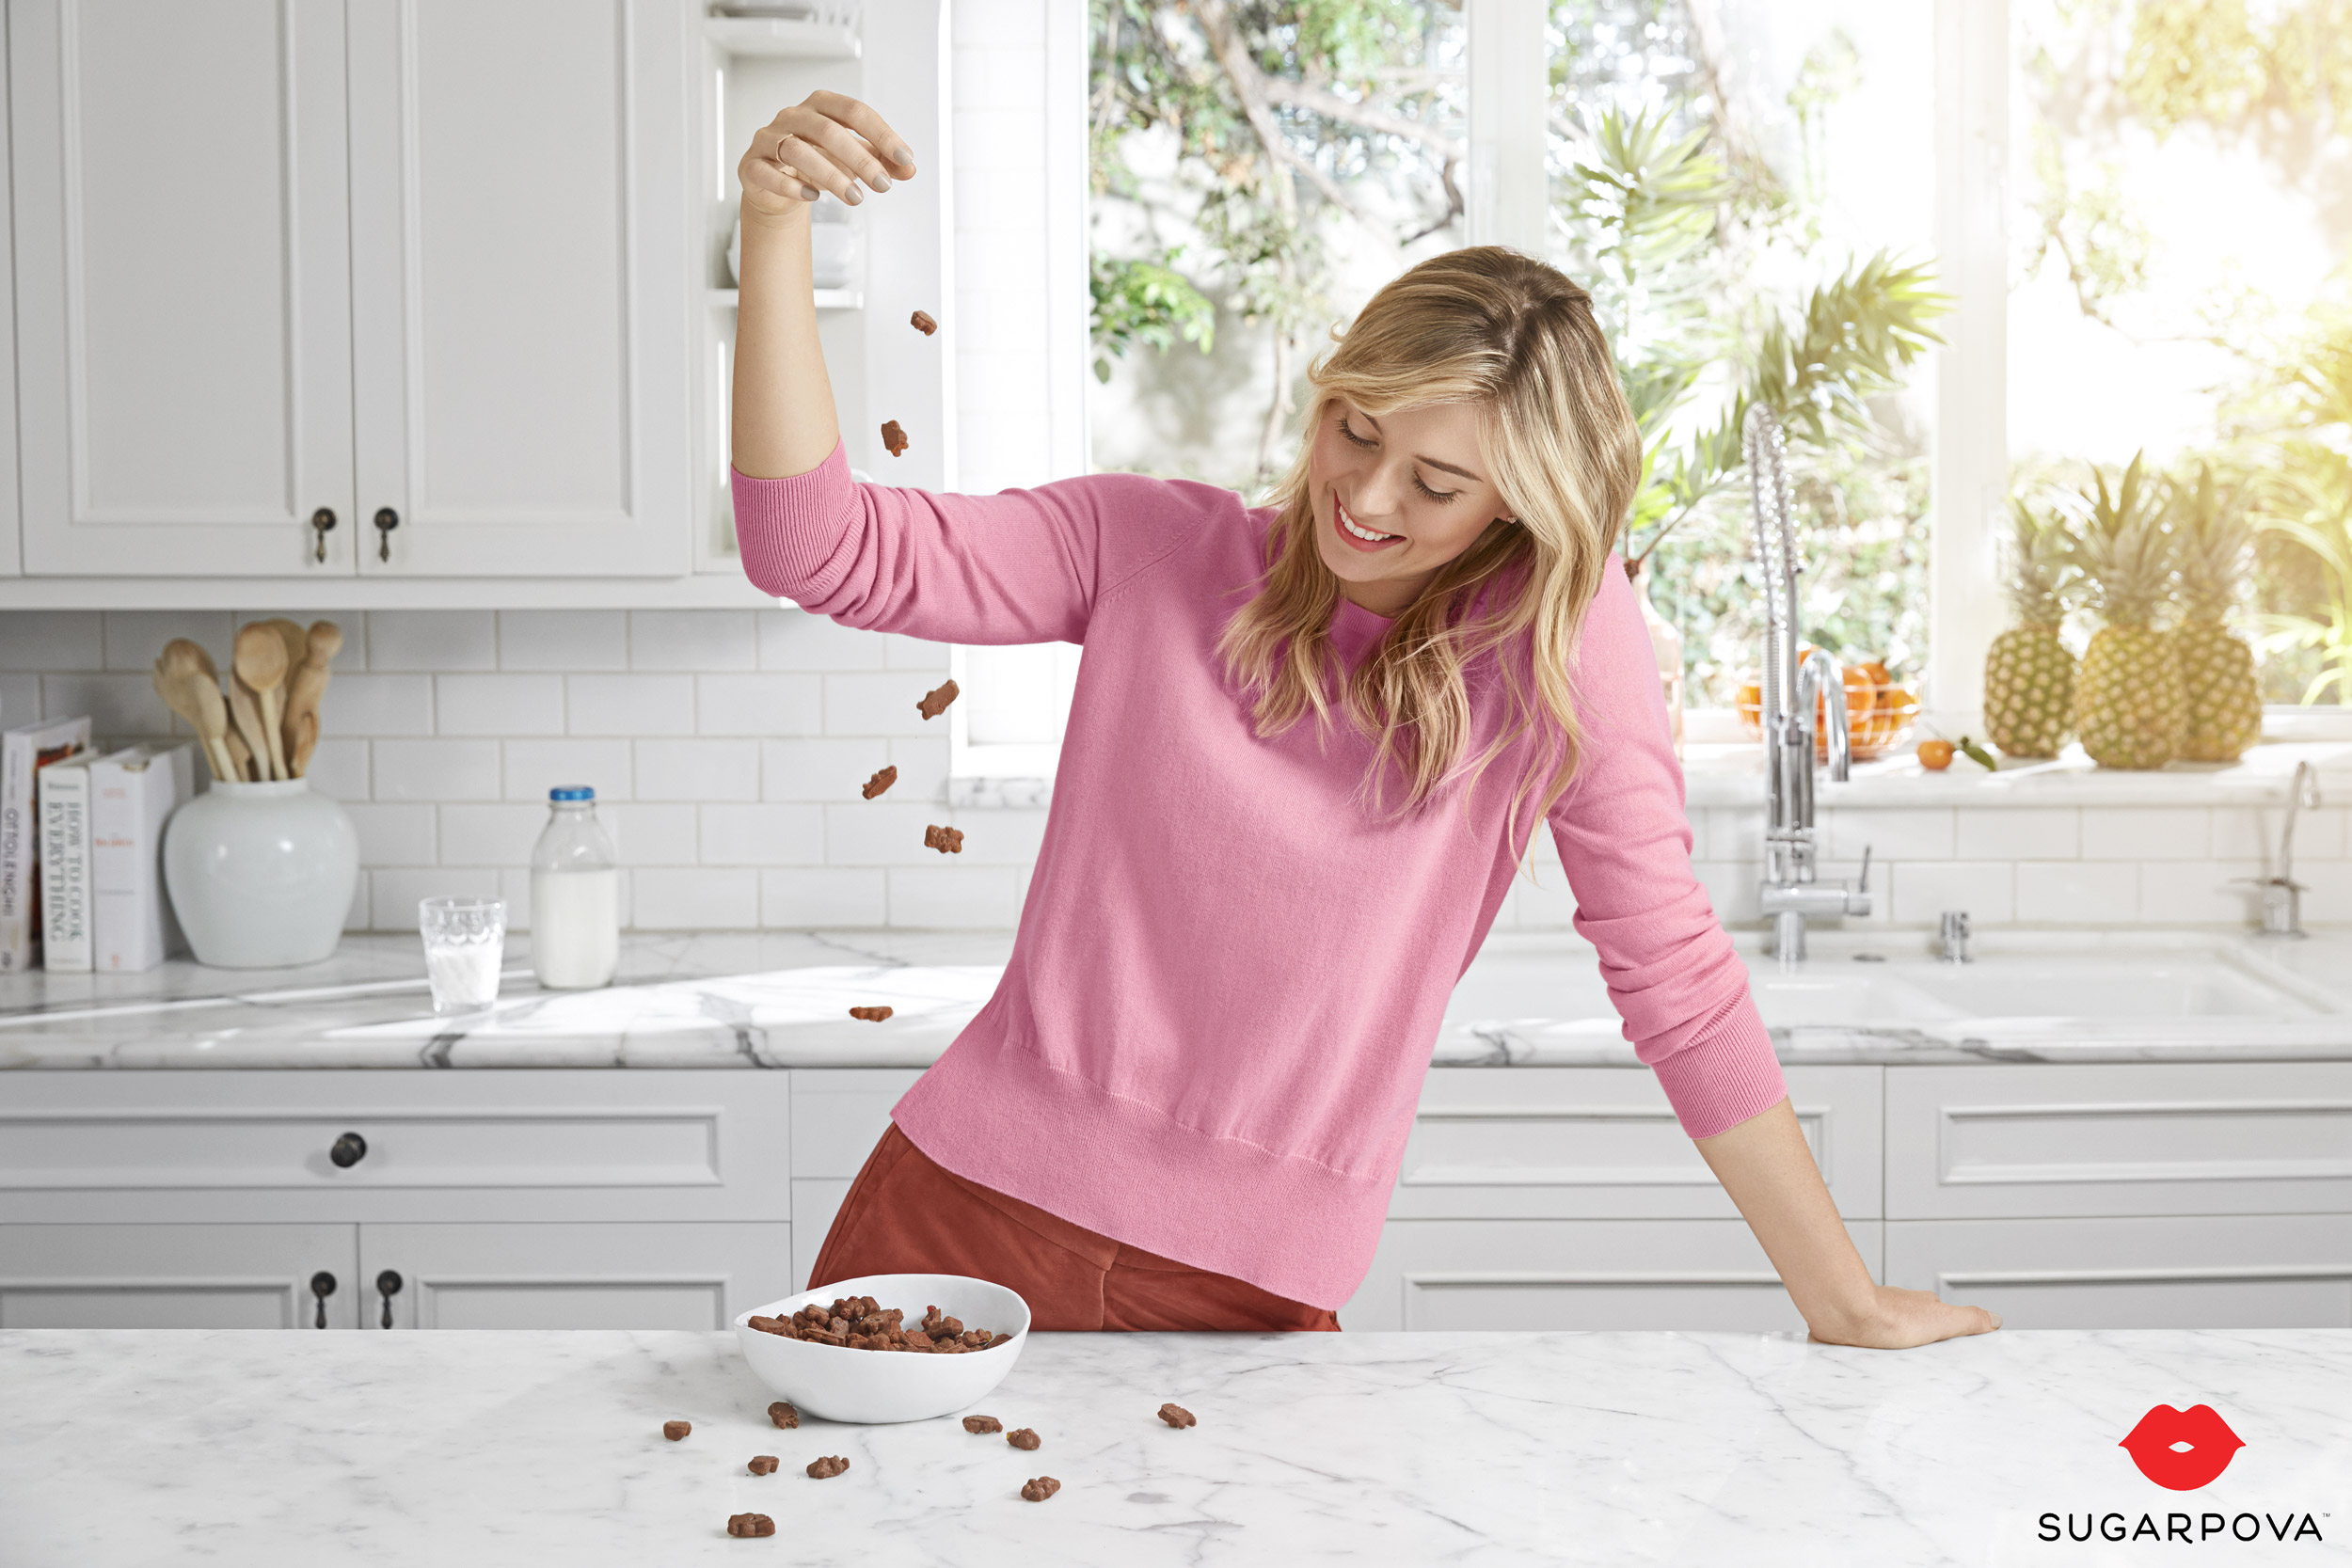 Maria Sharapova in the kitchen dropping chocolate gummy bears - Kimberly Genevieve Los Angeles Celebrity Photographer